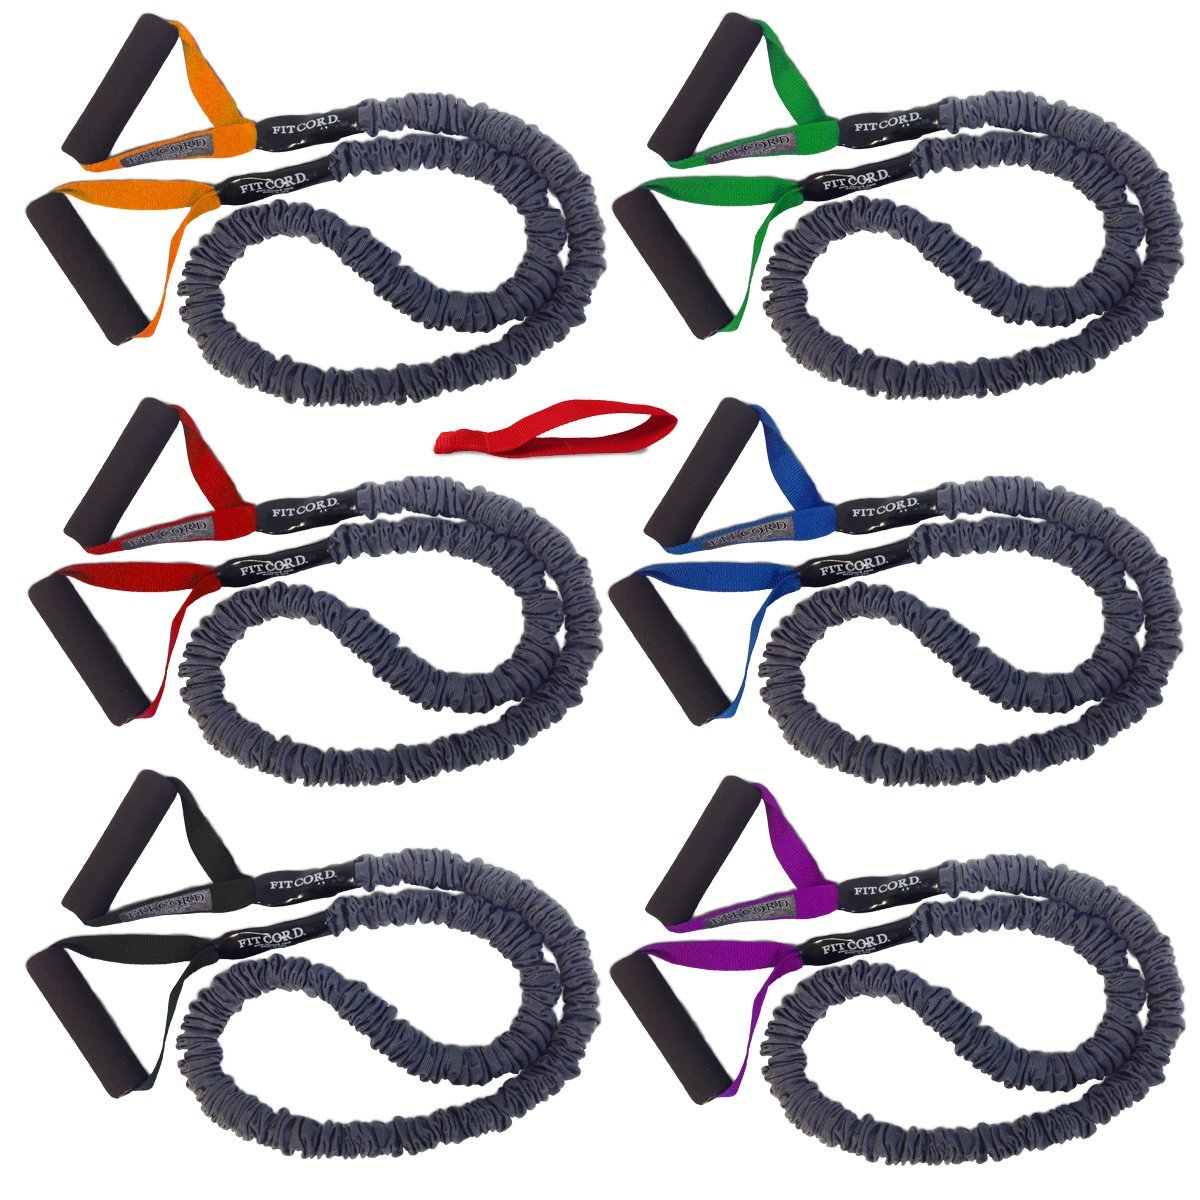 FitCord 6 Pack - Premium, Covered Resistance Bands for Fitness and Exercise. Includes 6 Resistance Levels (7lbs-55lbs) and Door Anchor.